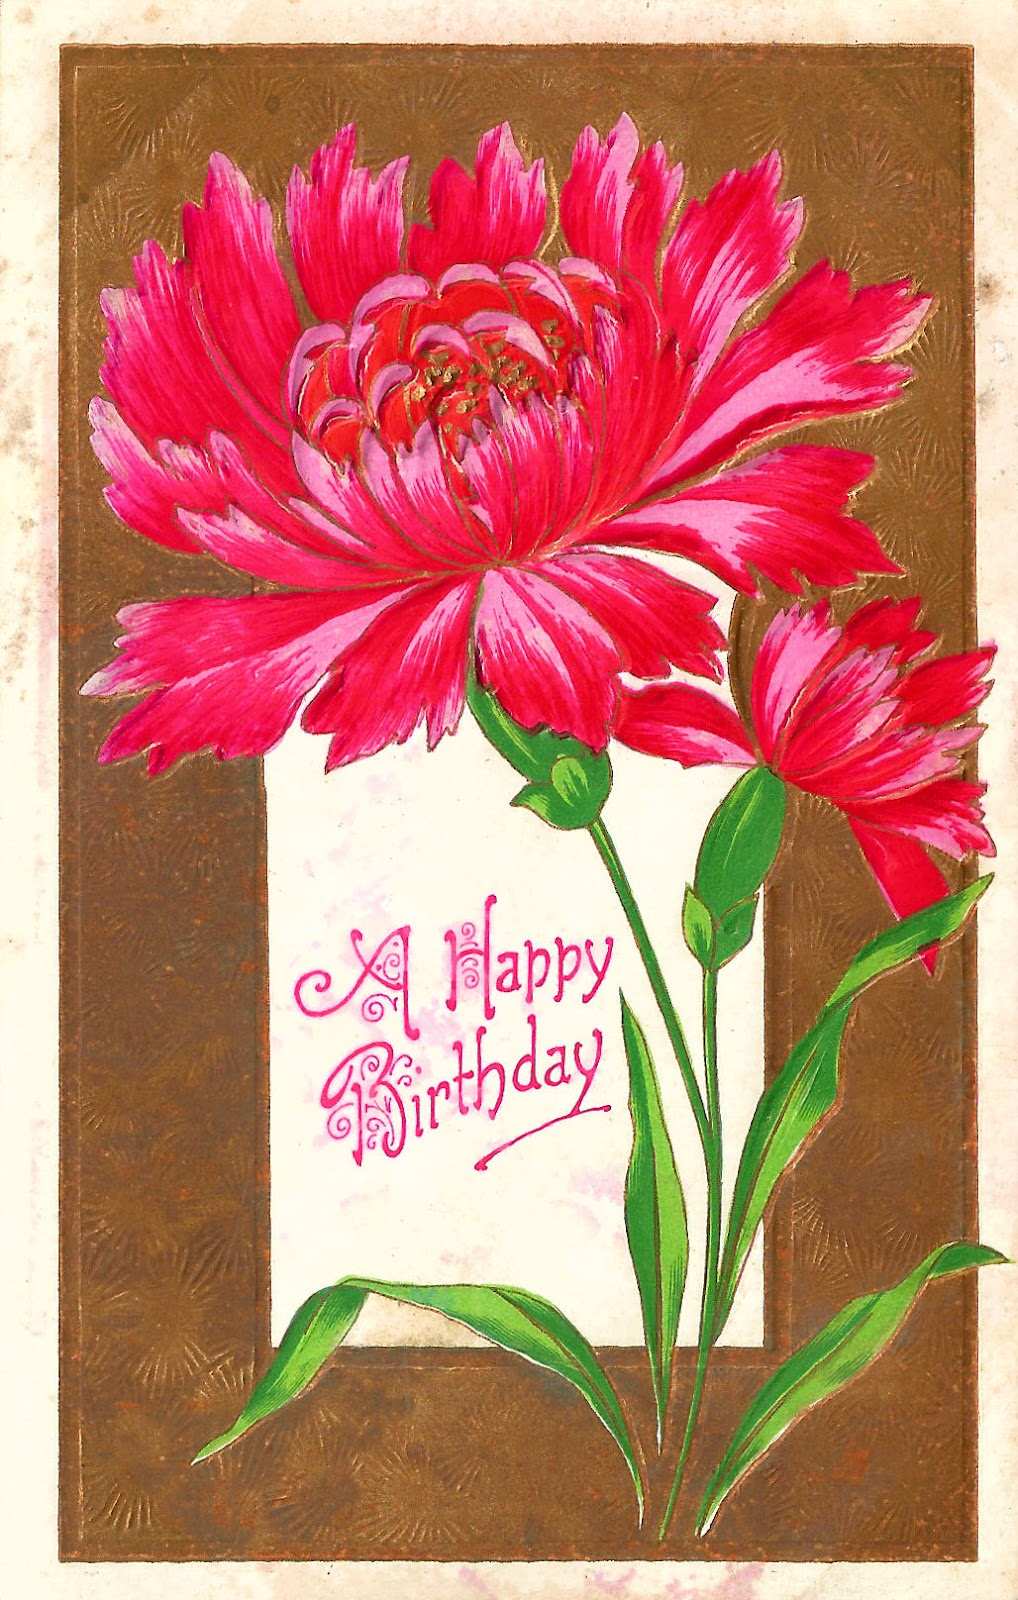 Antique images free vintage flower graphic pink carnation clip art free vintage flower graphic pink carnation clip art on happy birthday postcard izmirmasajfo Image collections